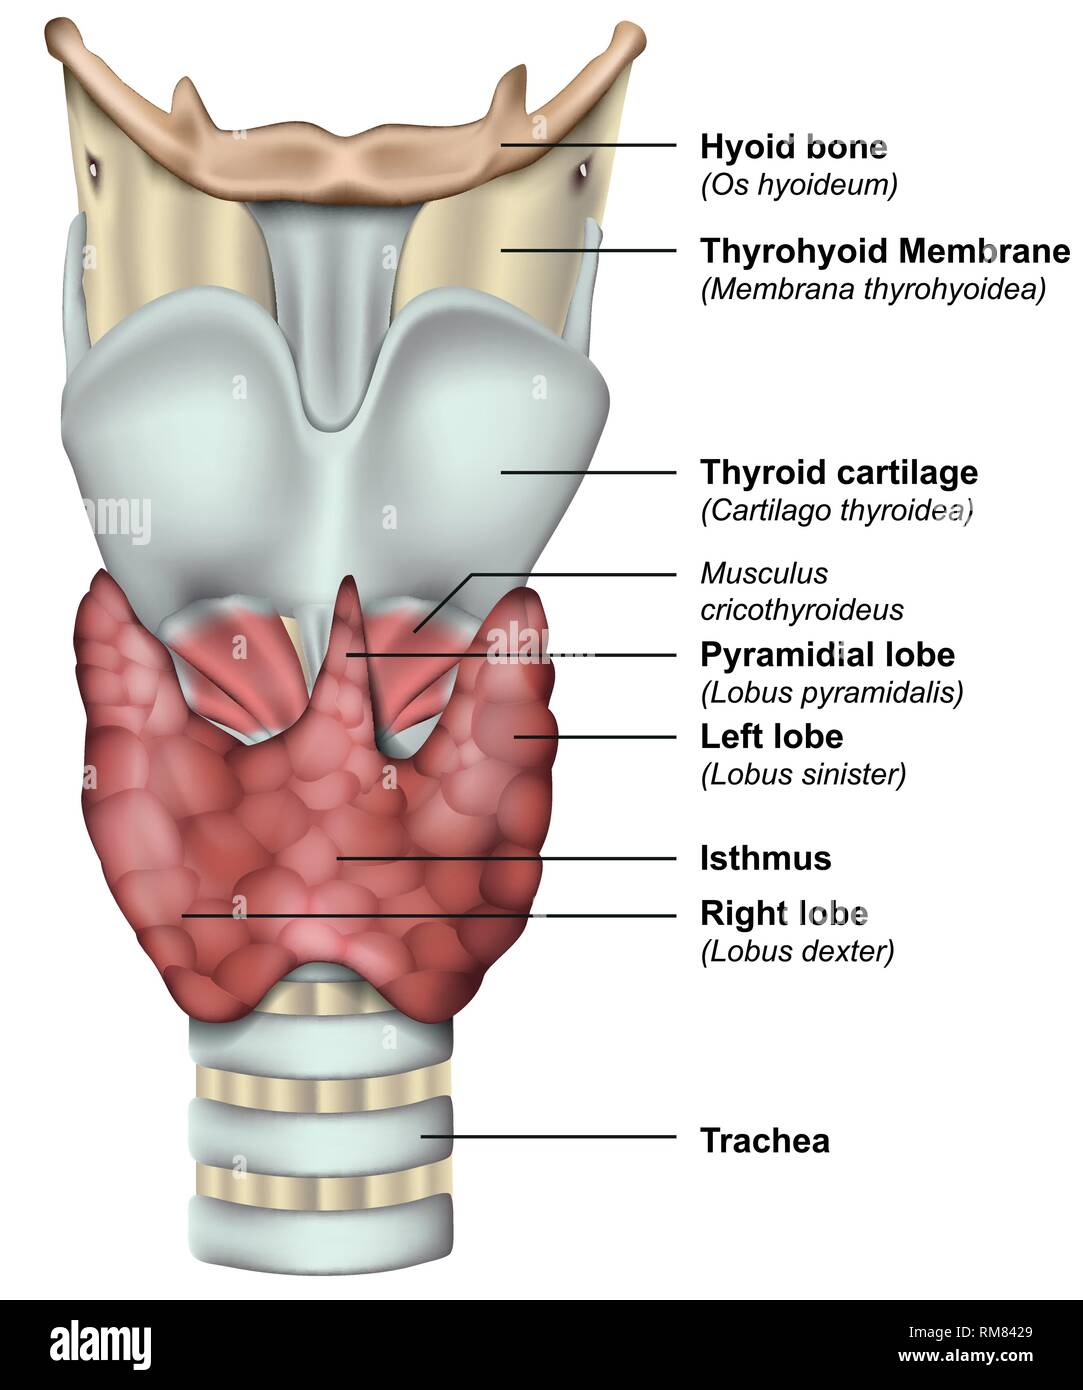 Anatomy Of The Thyroid Gland Medical 3d Vector Illustration Stock